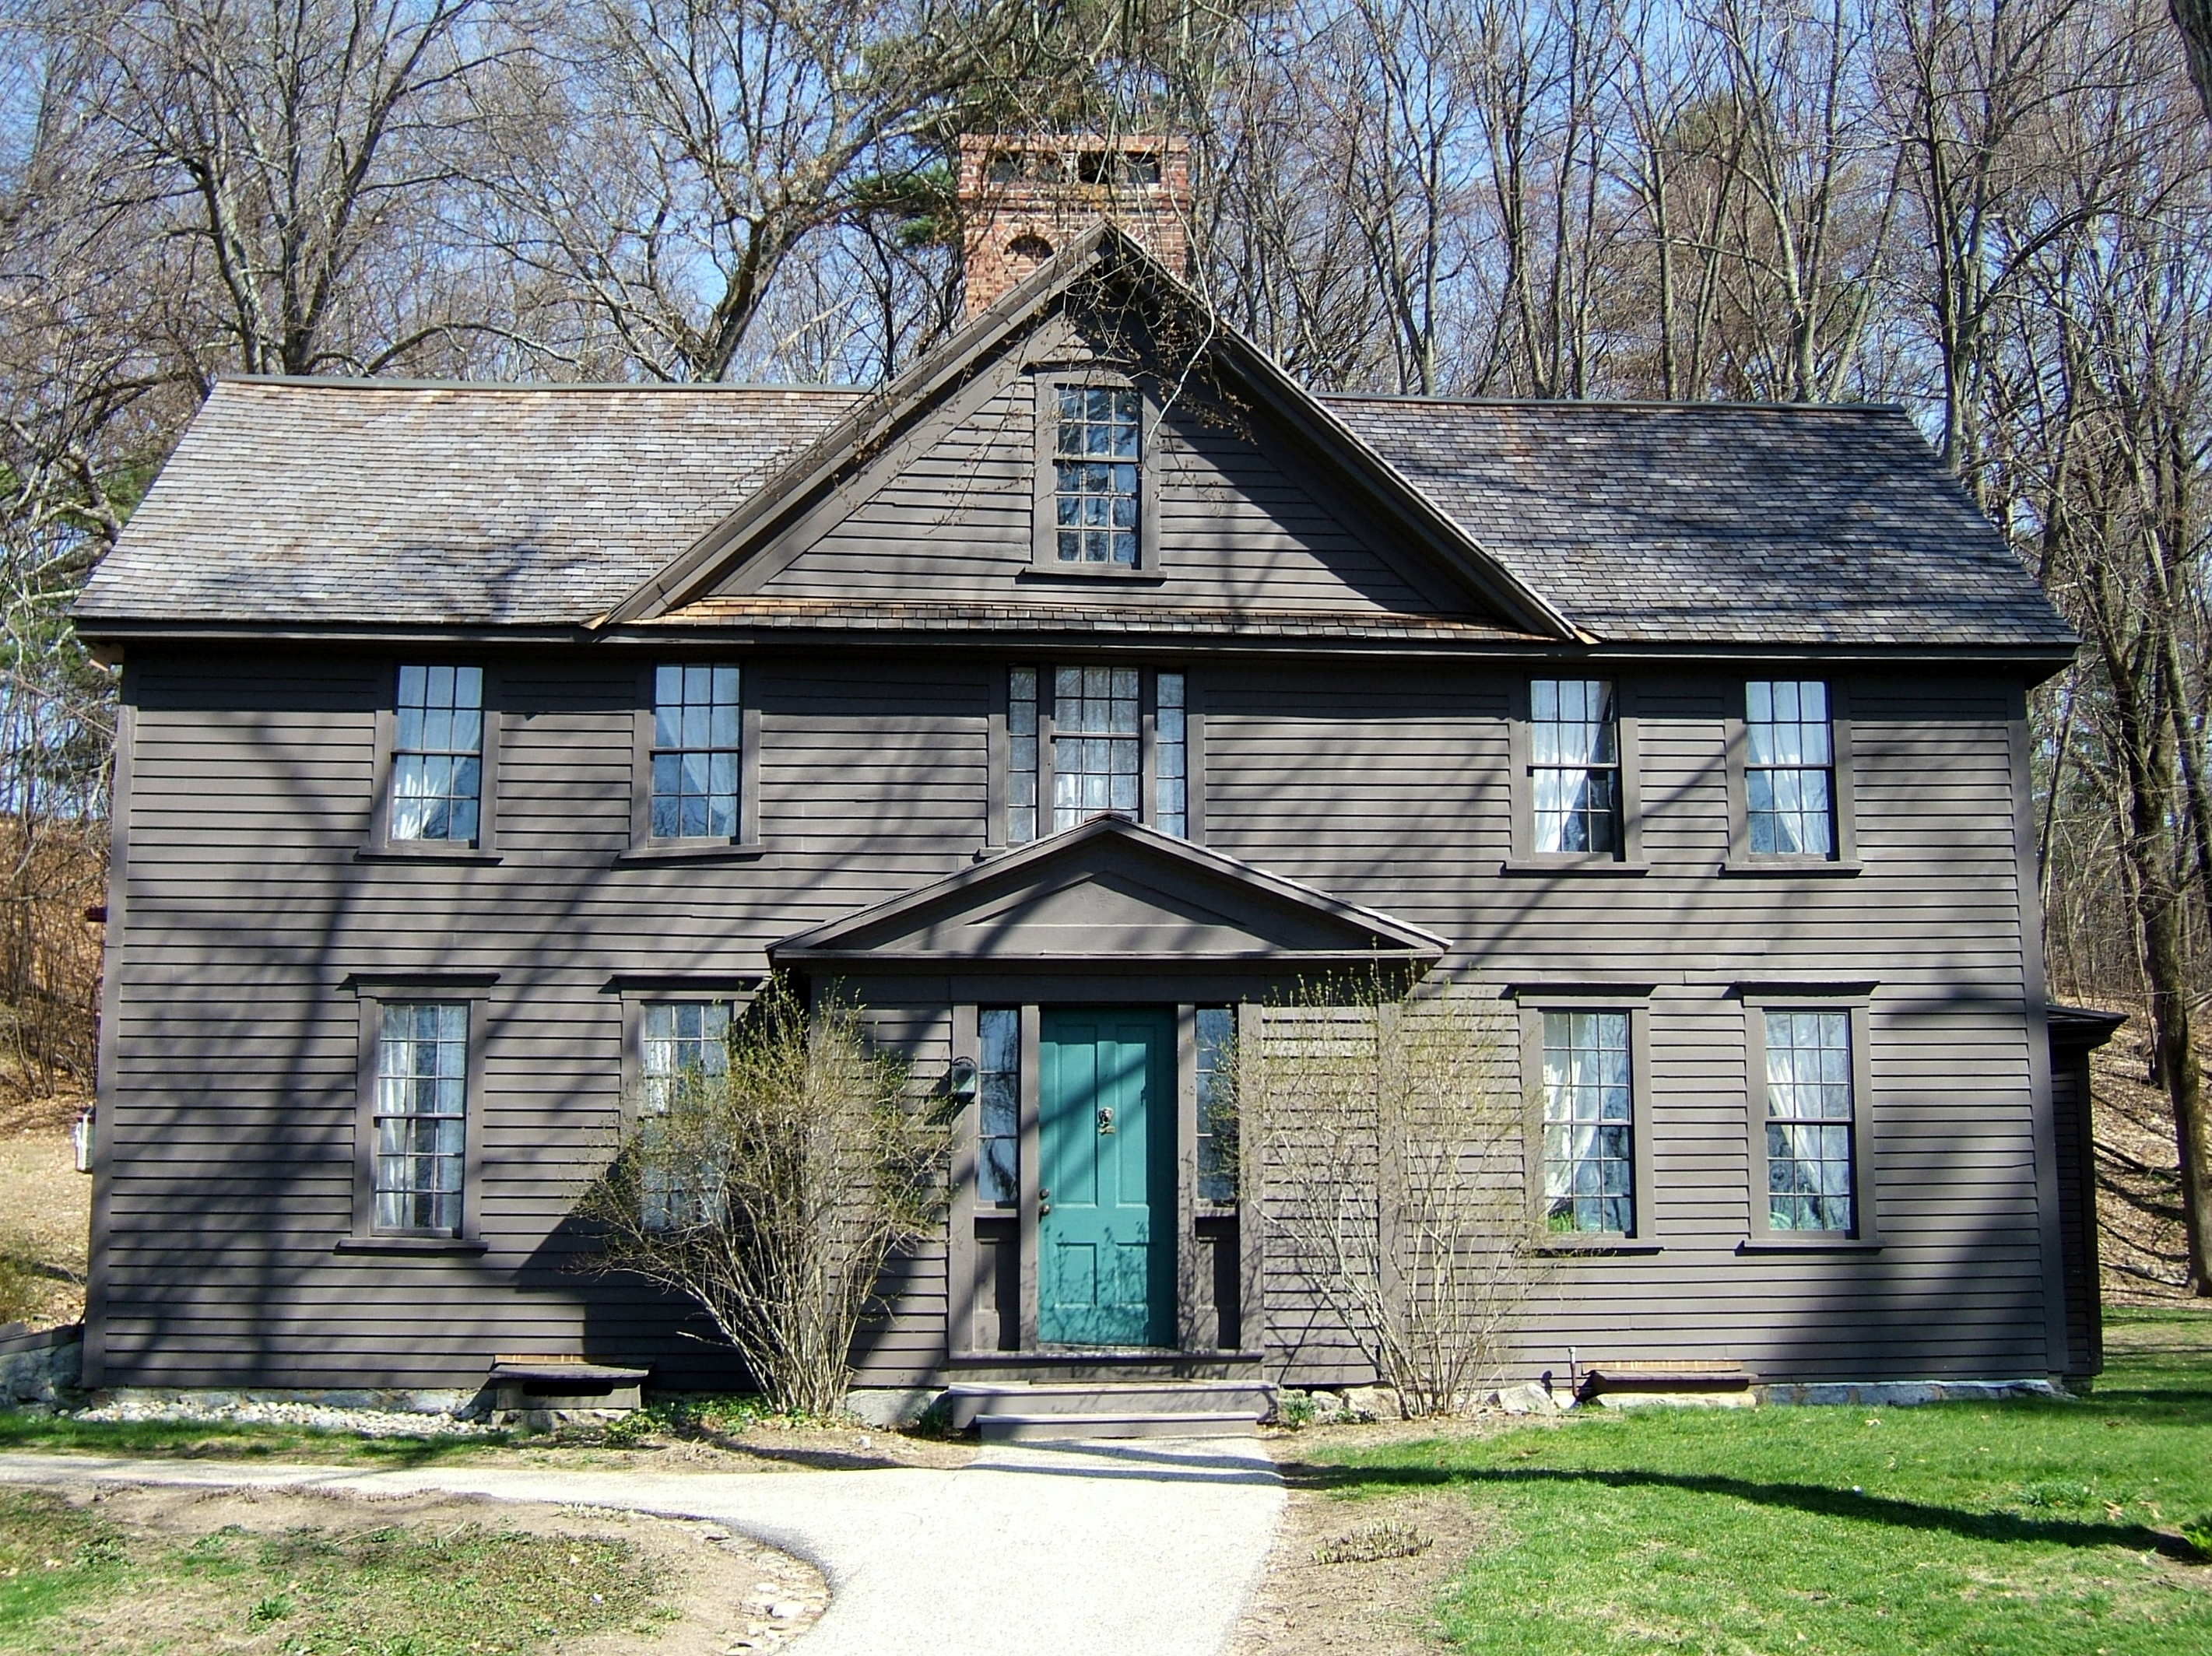 A Visit To Orchard House, The Alcott Family Home In Concord, Massachusetts,  Is Like Stepping Into The Pages Of Little Women. Louisa May Alcott Drew  Heavily ...